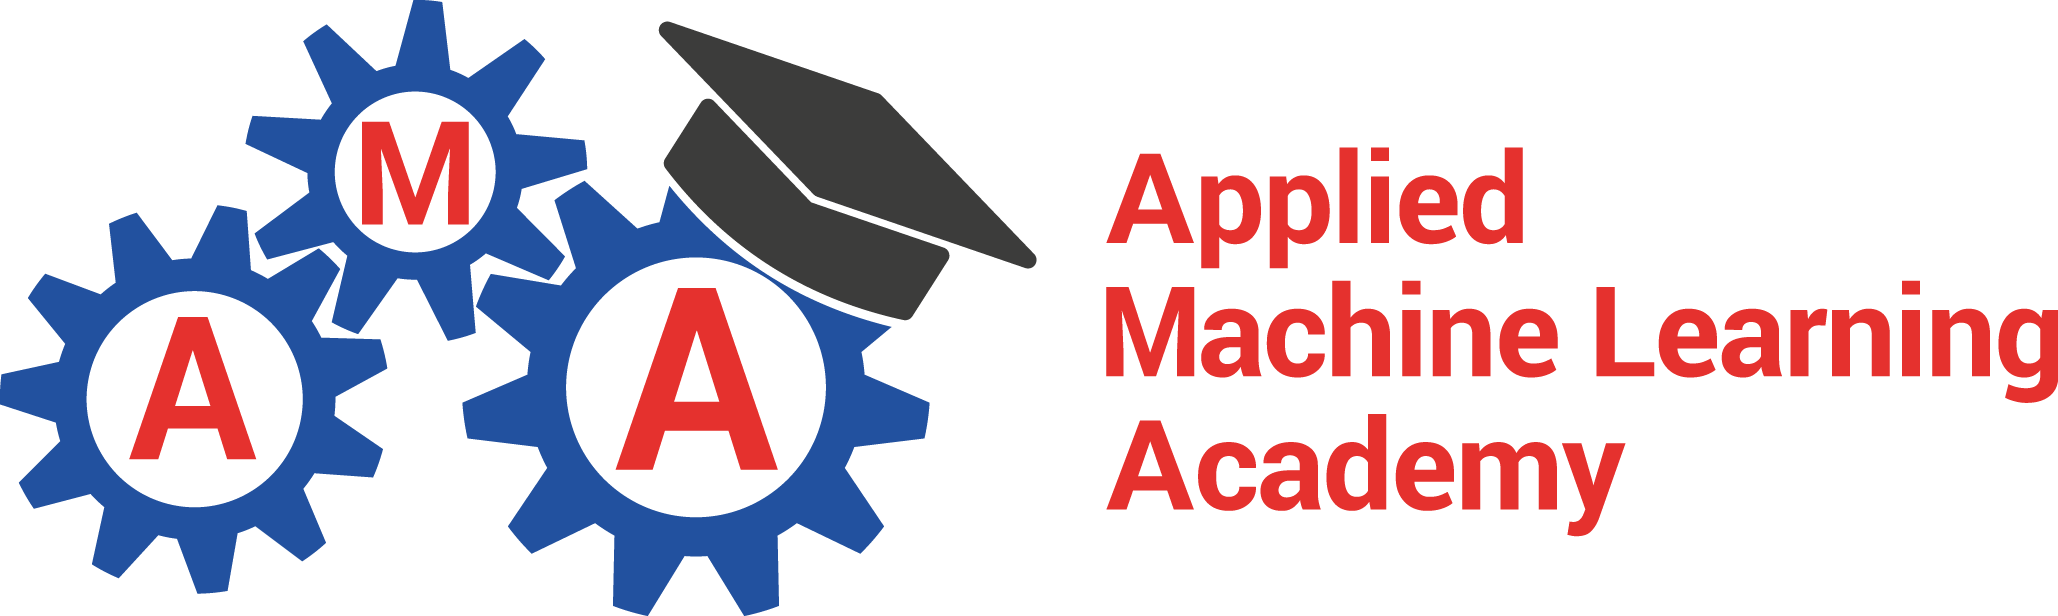 AMA – Applied  Machine Learning Academy